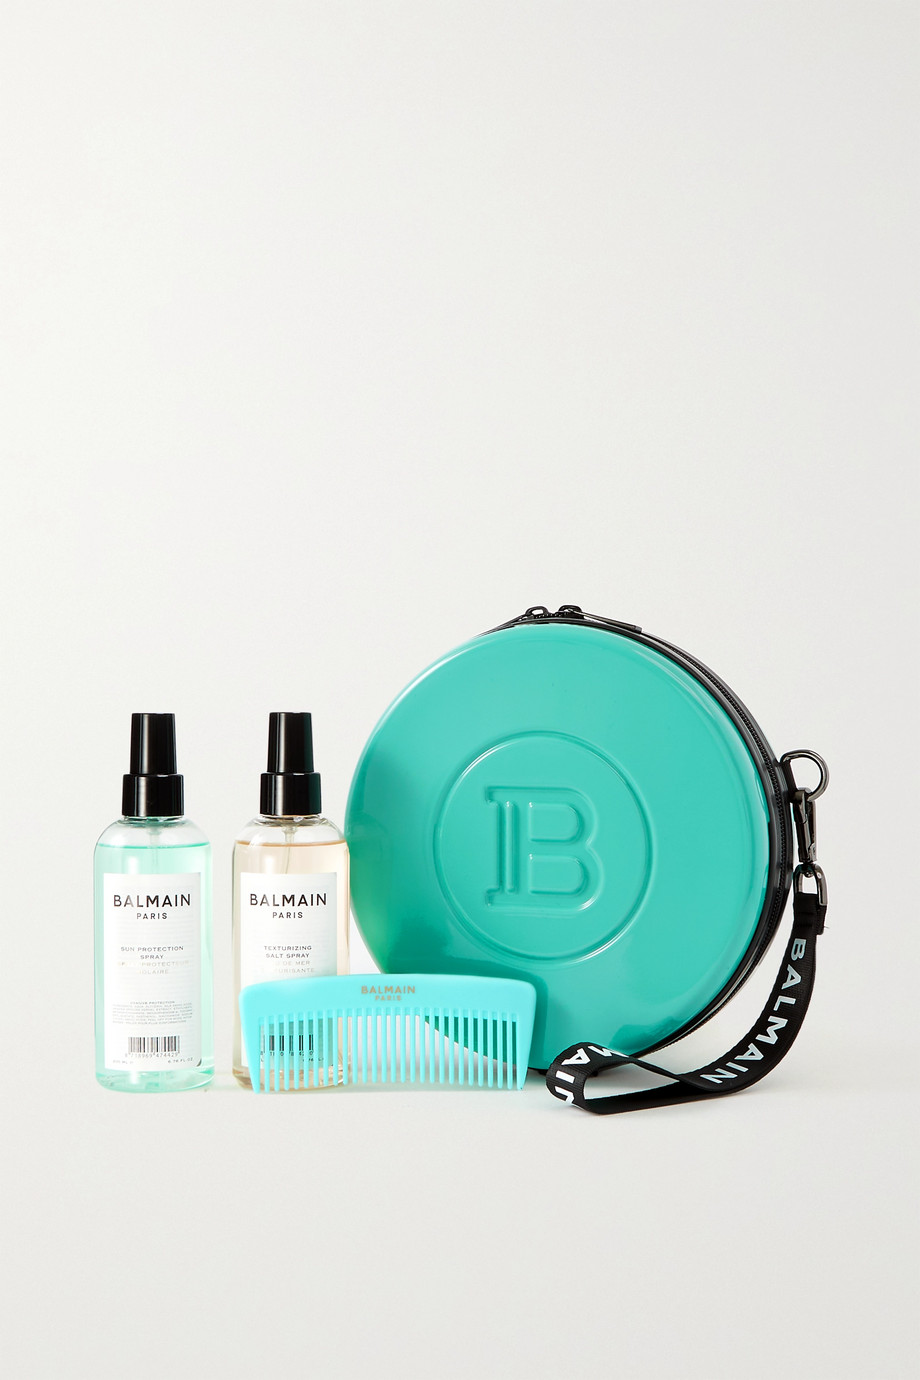 BALMAIN PARIS HAIR COUTURE SS21 Pouch Set